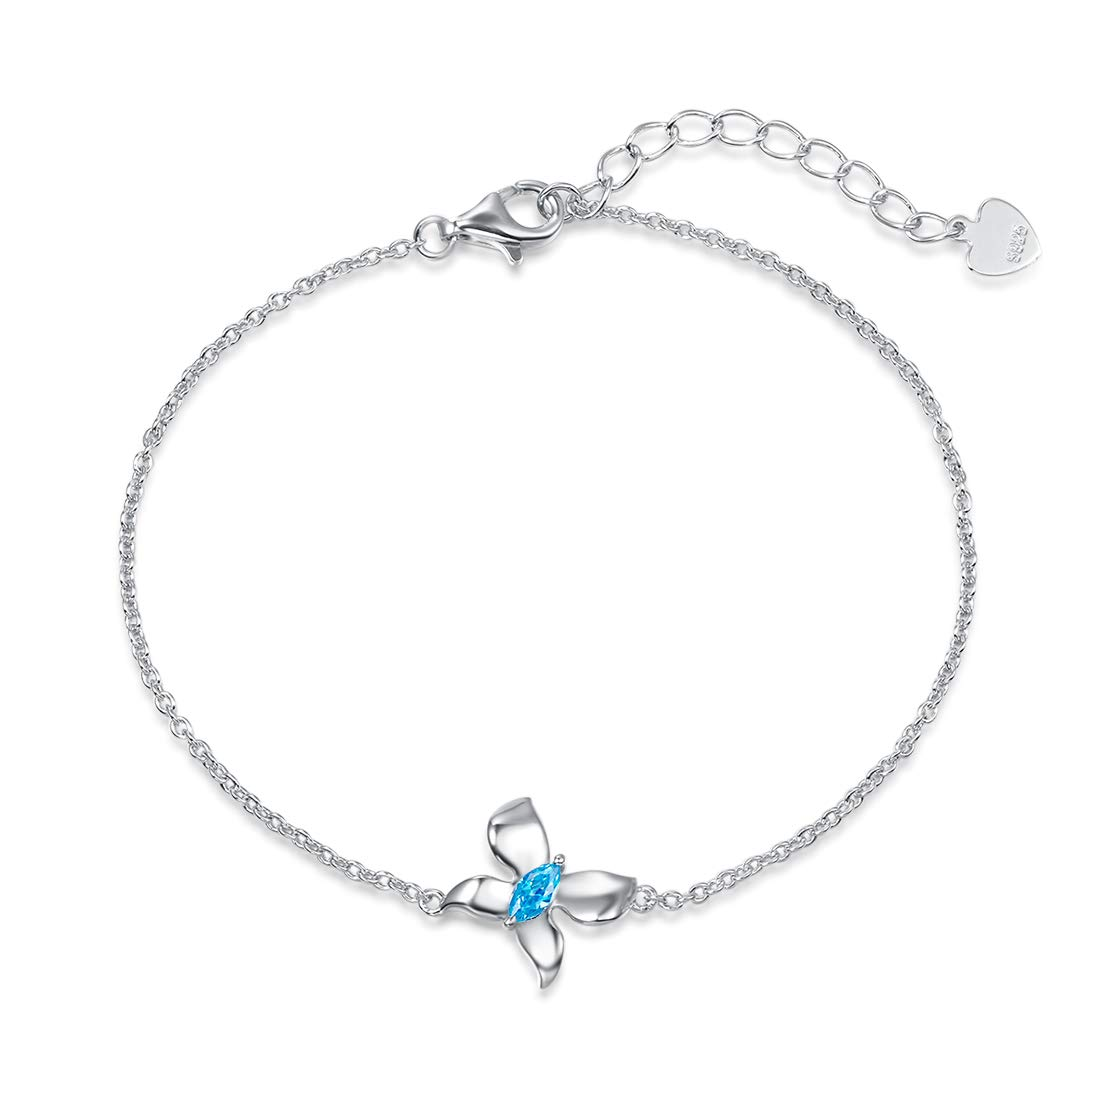 6 Fancime White Gold Plated 925 Sterling Silver CZ Cubic Zirconia Delicate Butterfly Bracelet Fine Jewelry Gifts For Women Girls 2 Extender